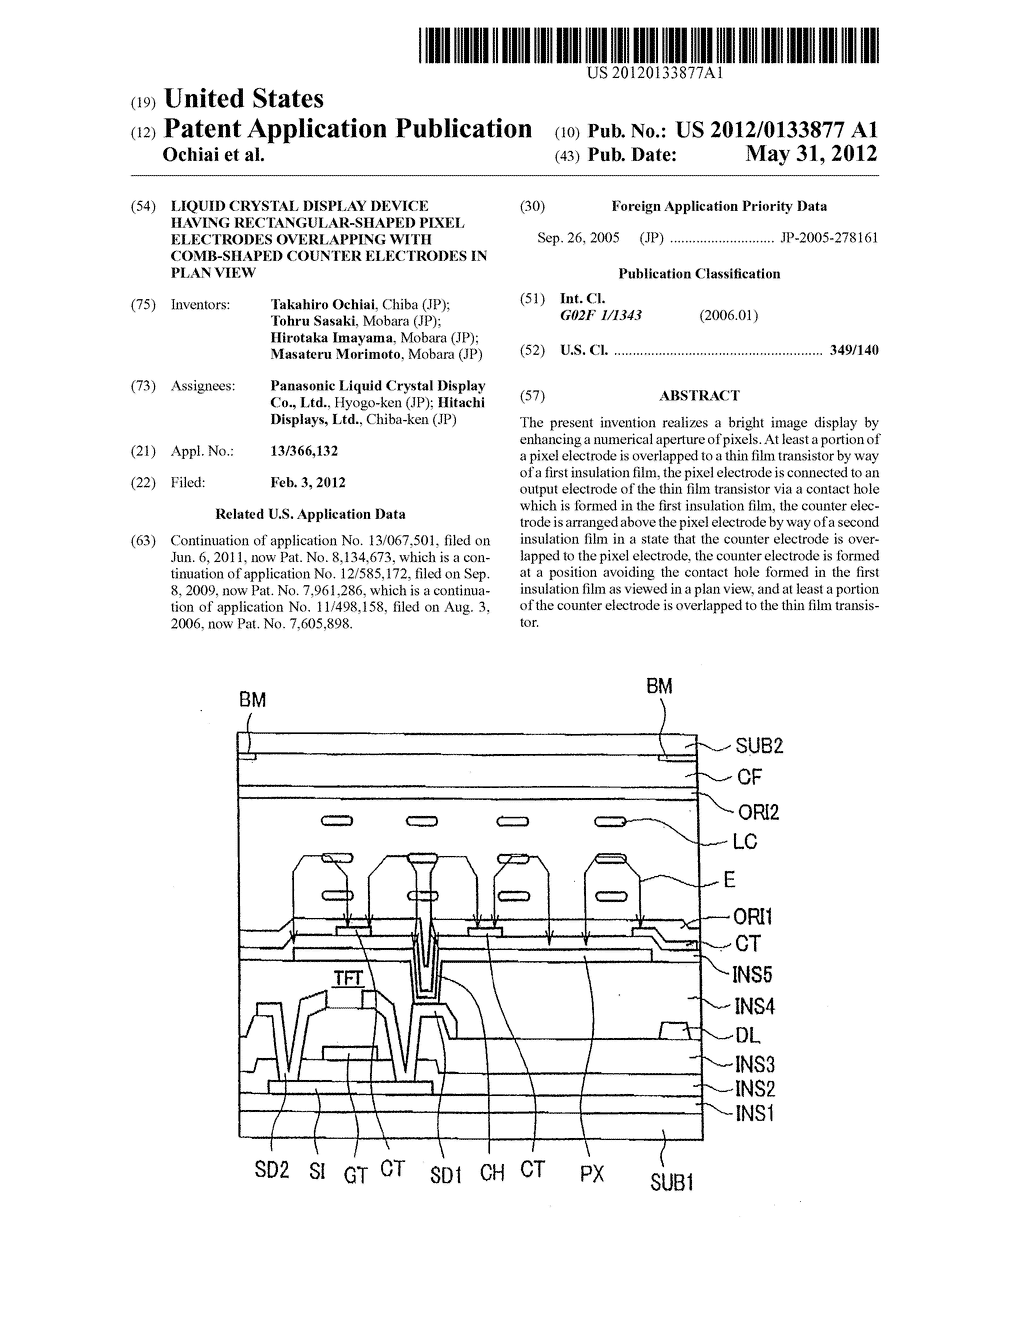 Liquid Crystal Display Device Having Rectangular-Shaped Pixel Electrodes     Overlapping with Comb-Shaped Counter Electrodes in Plan View - diagram, schematic, and image 01